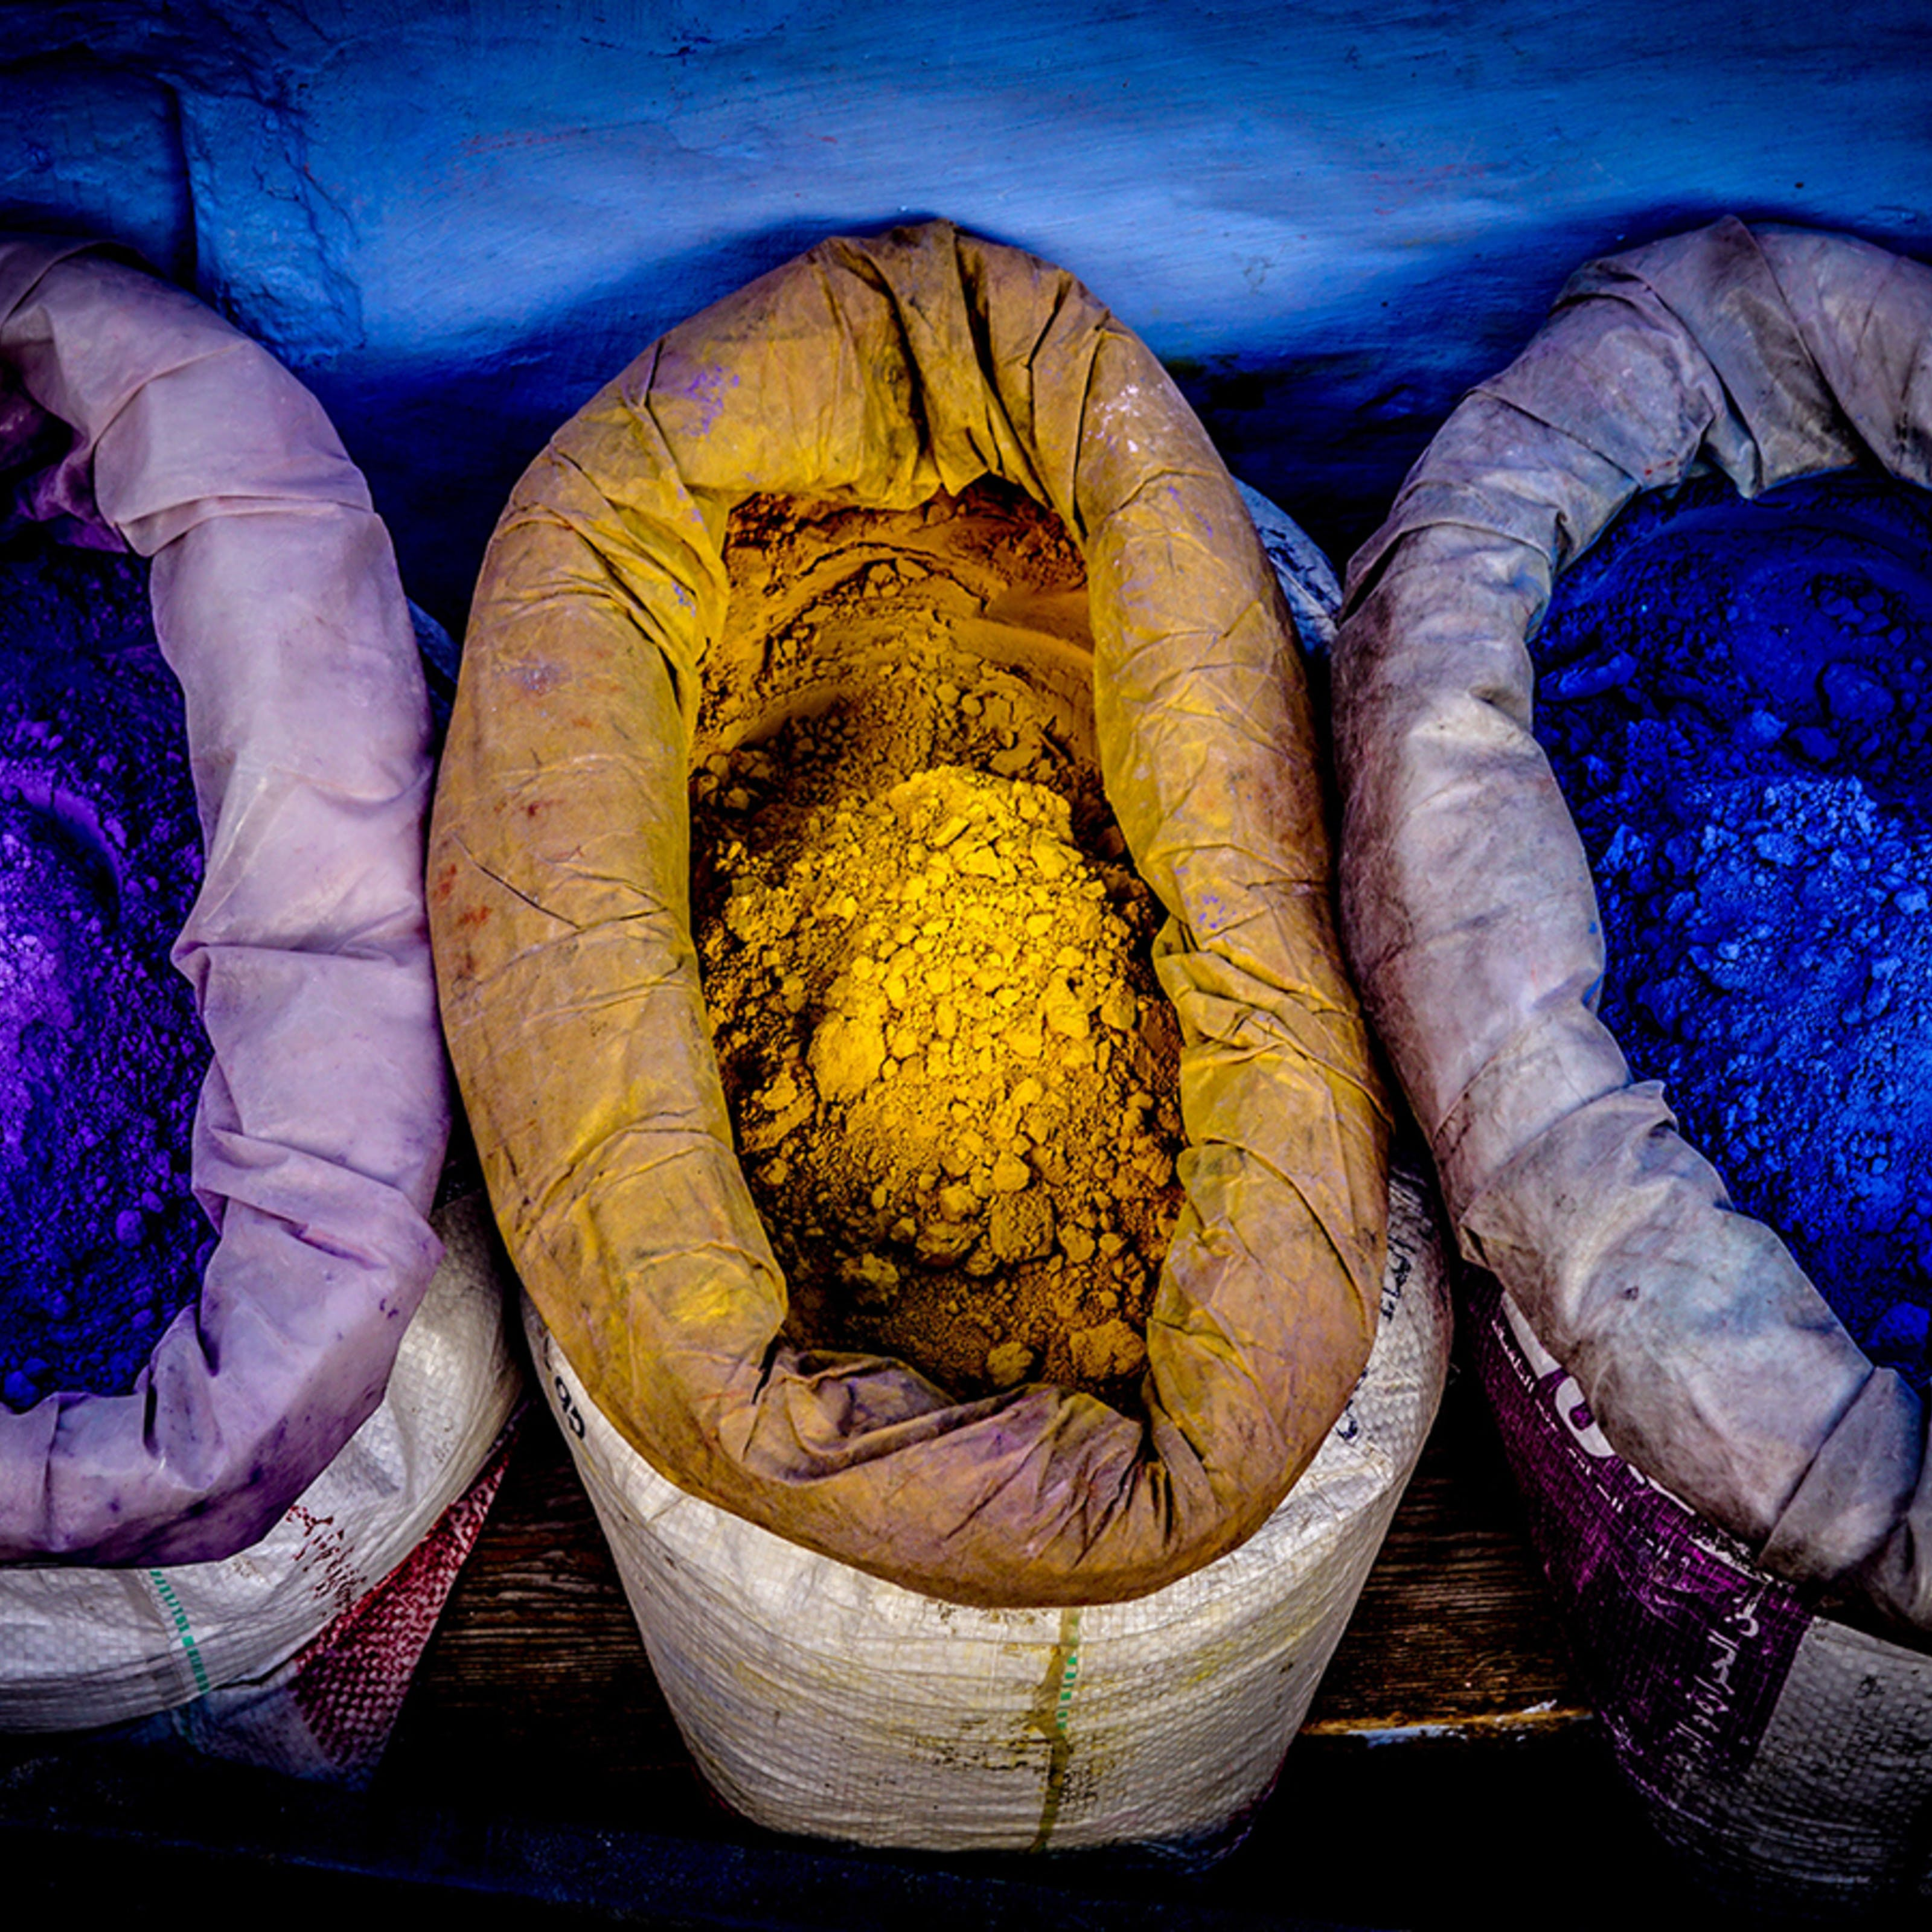 Sacks containing brightly coloured yellow and blue powder pigments